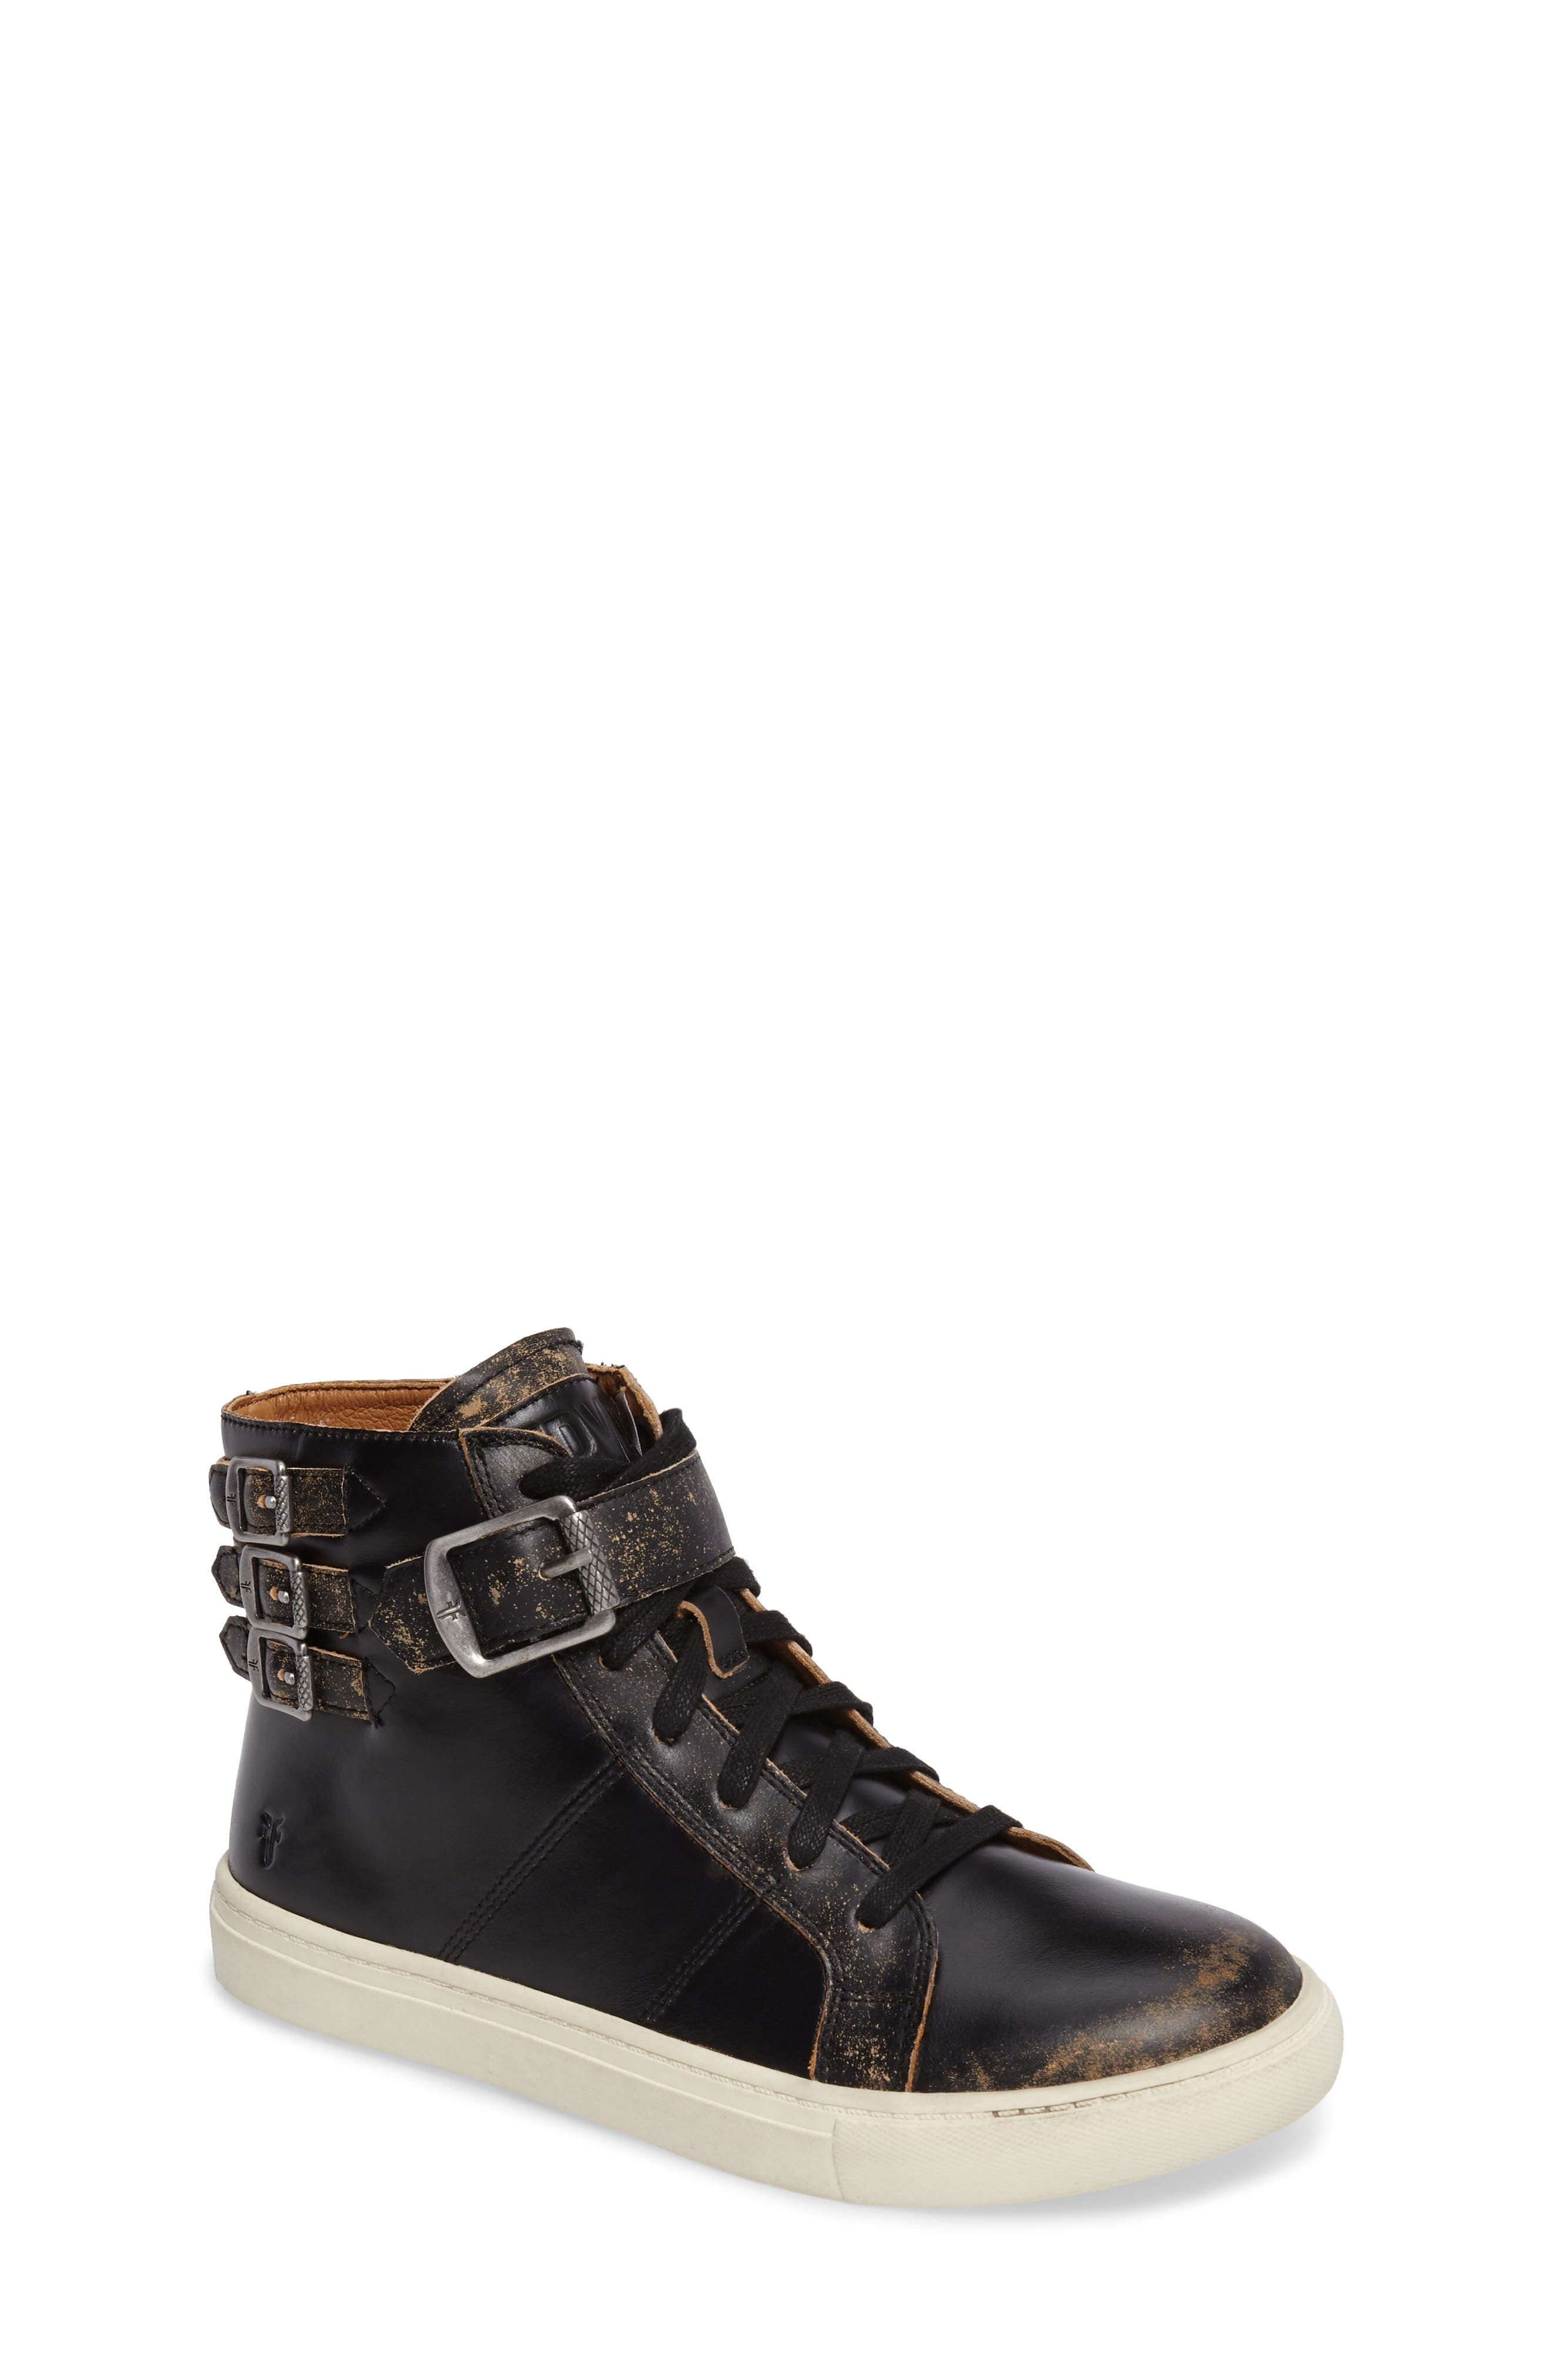 Alternate Image 1 Selected - Frye Dylan Buckle Strap High-Top Sneaker (Toddler, Little Kid & Big Kid)